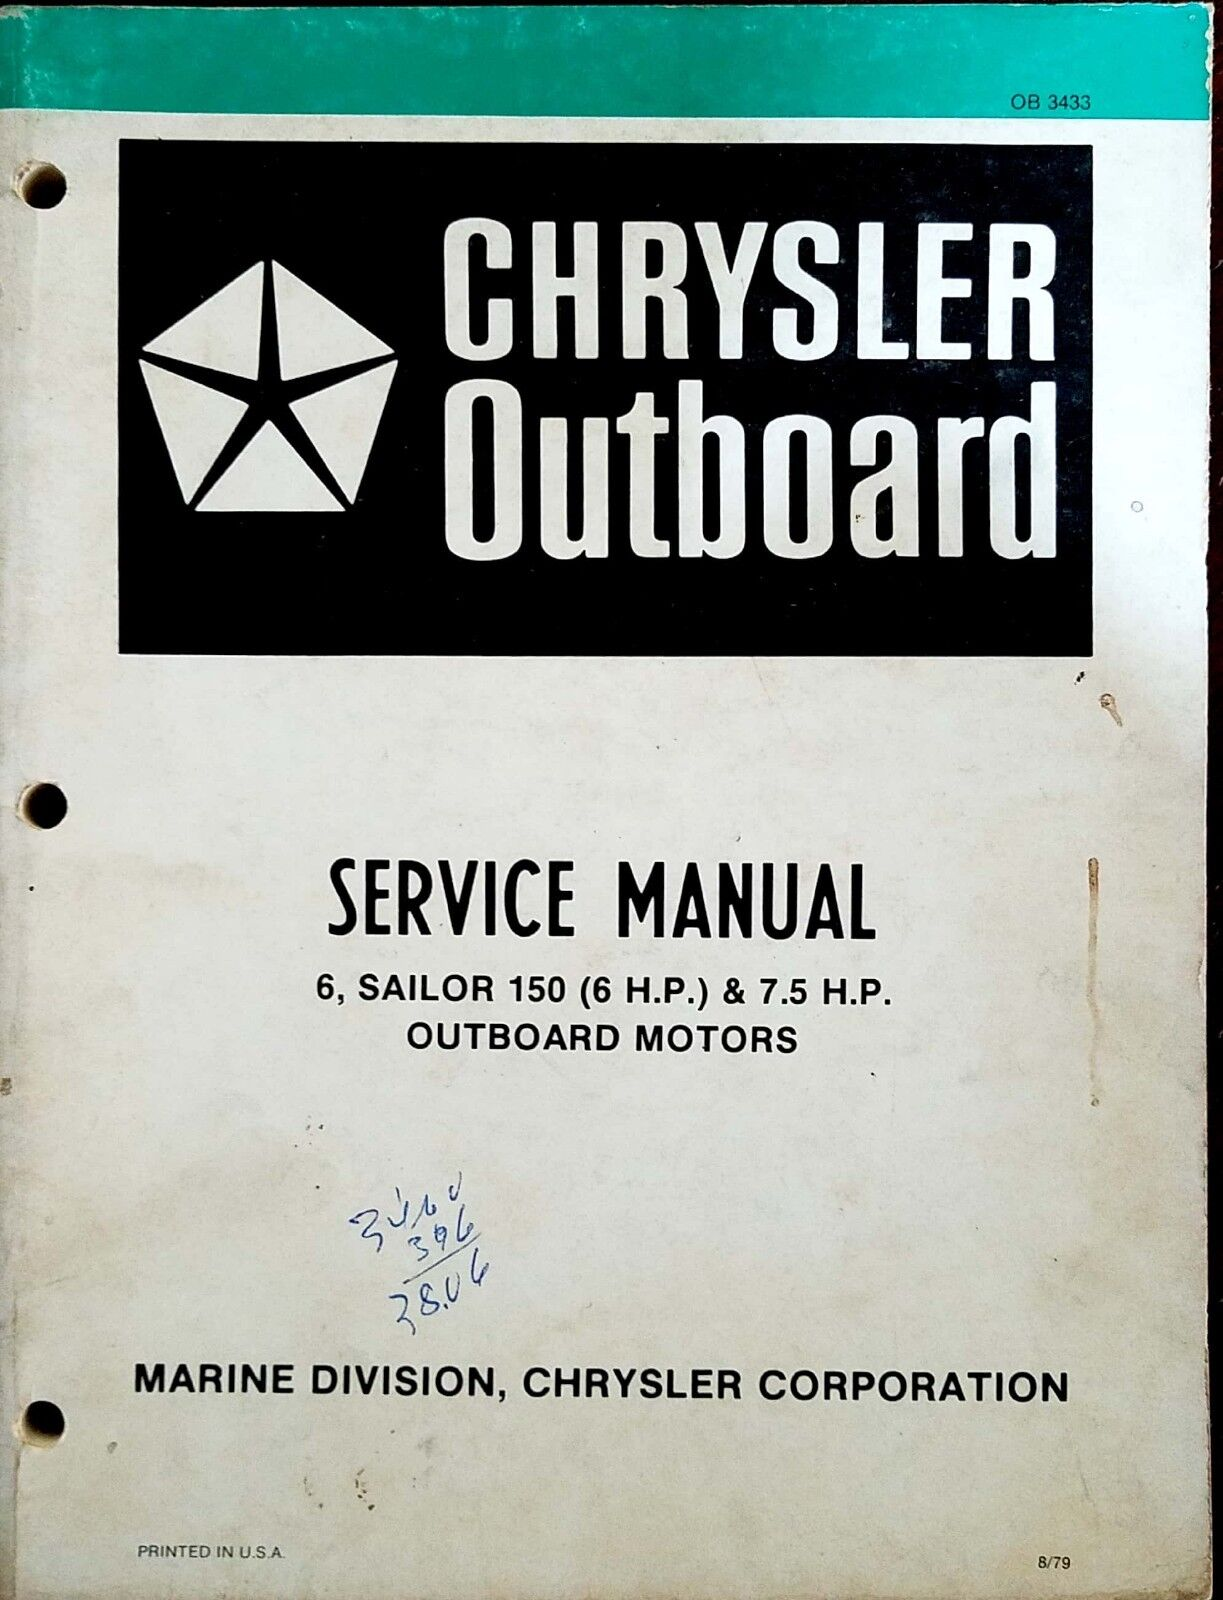 Chrysler Outboard Service Manual for 6HP Sailor 150 7.5HP